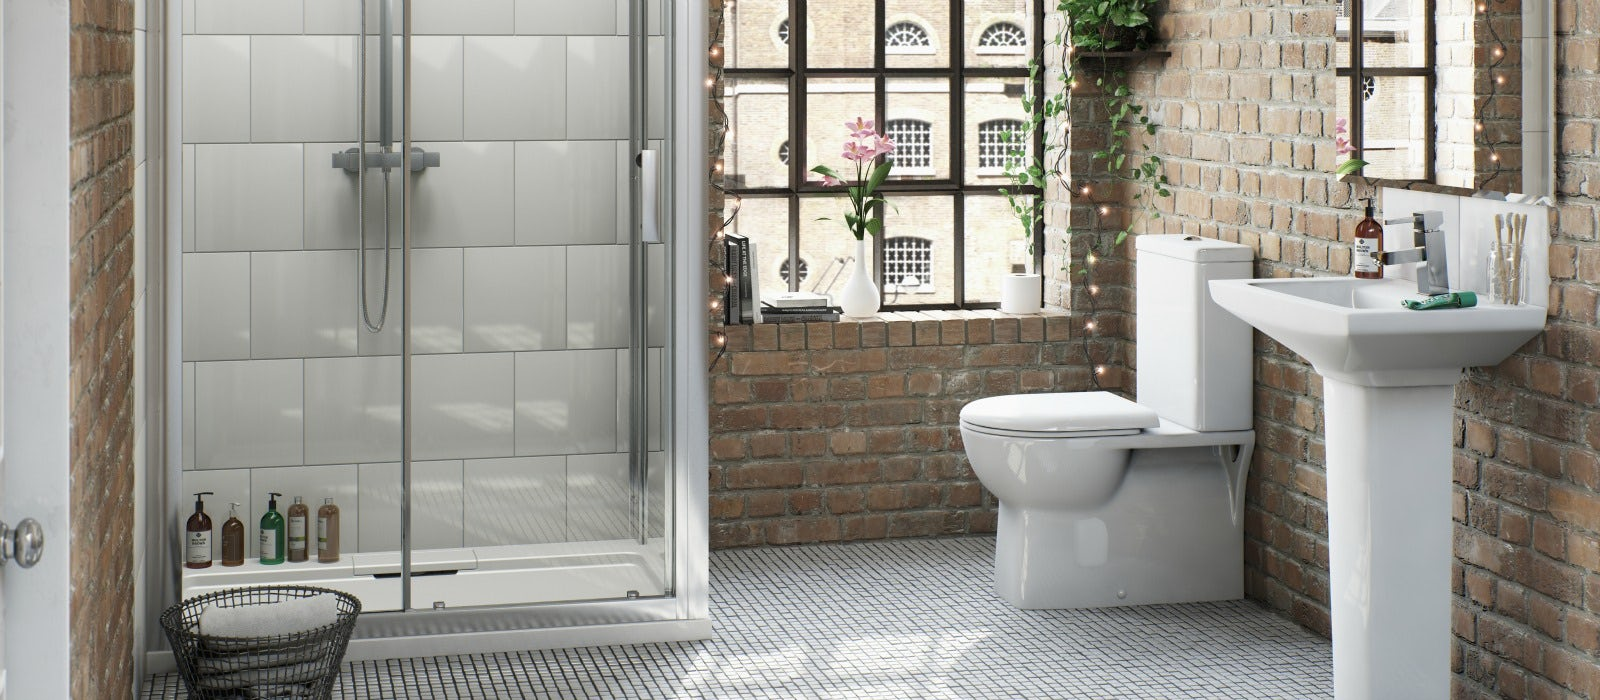 Trending: How to get the repurposed look for your bathroom